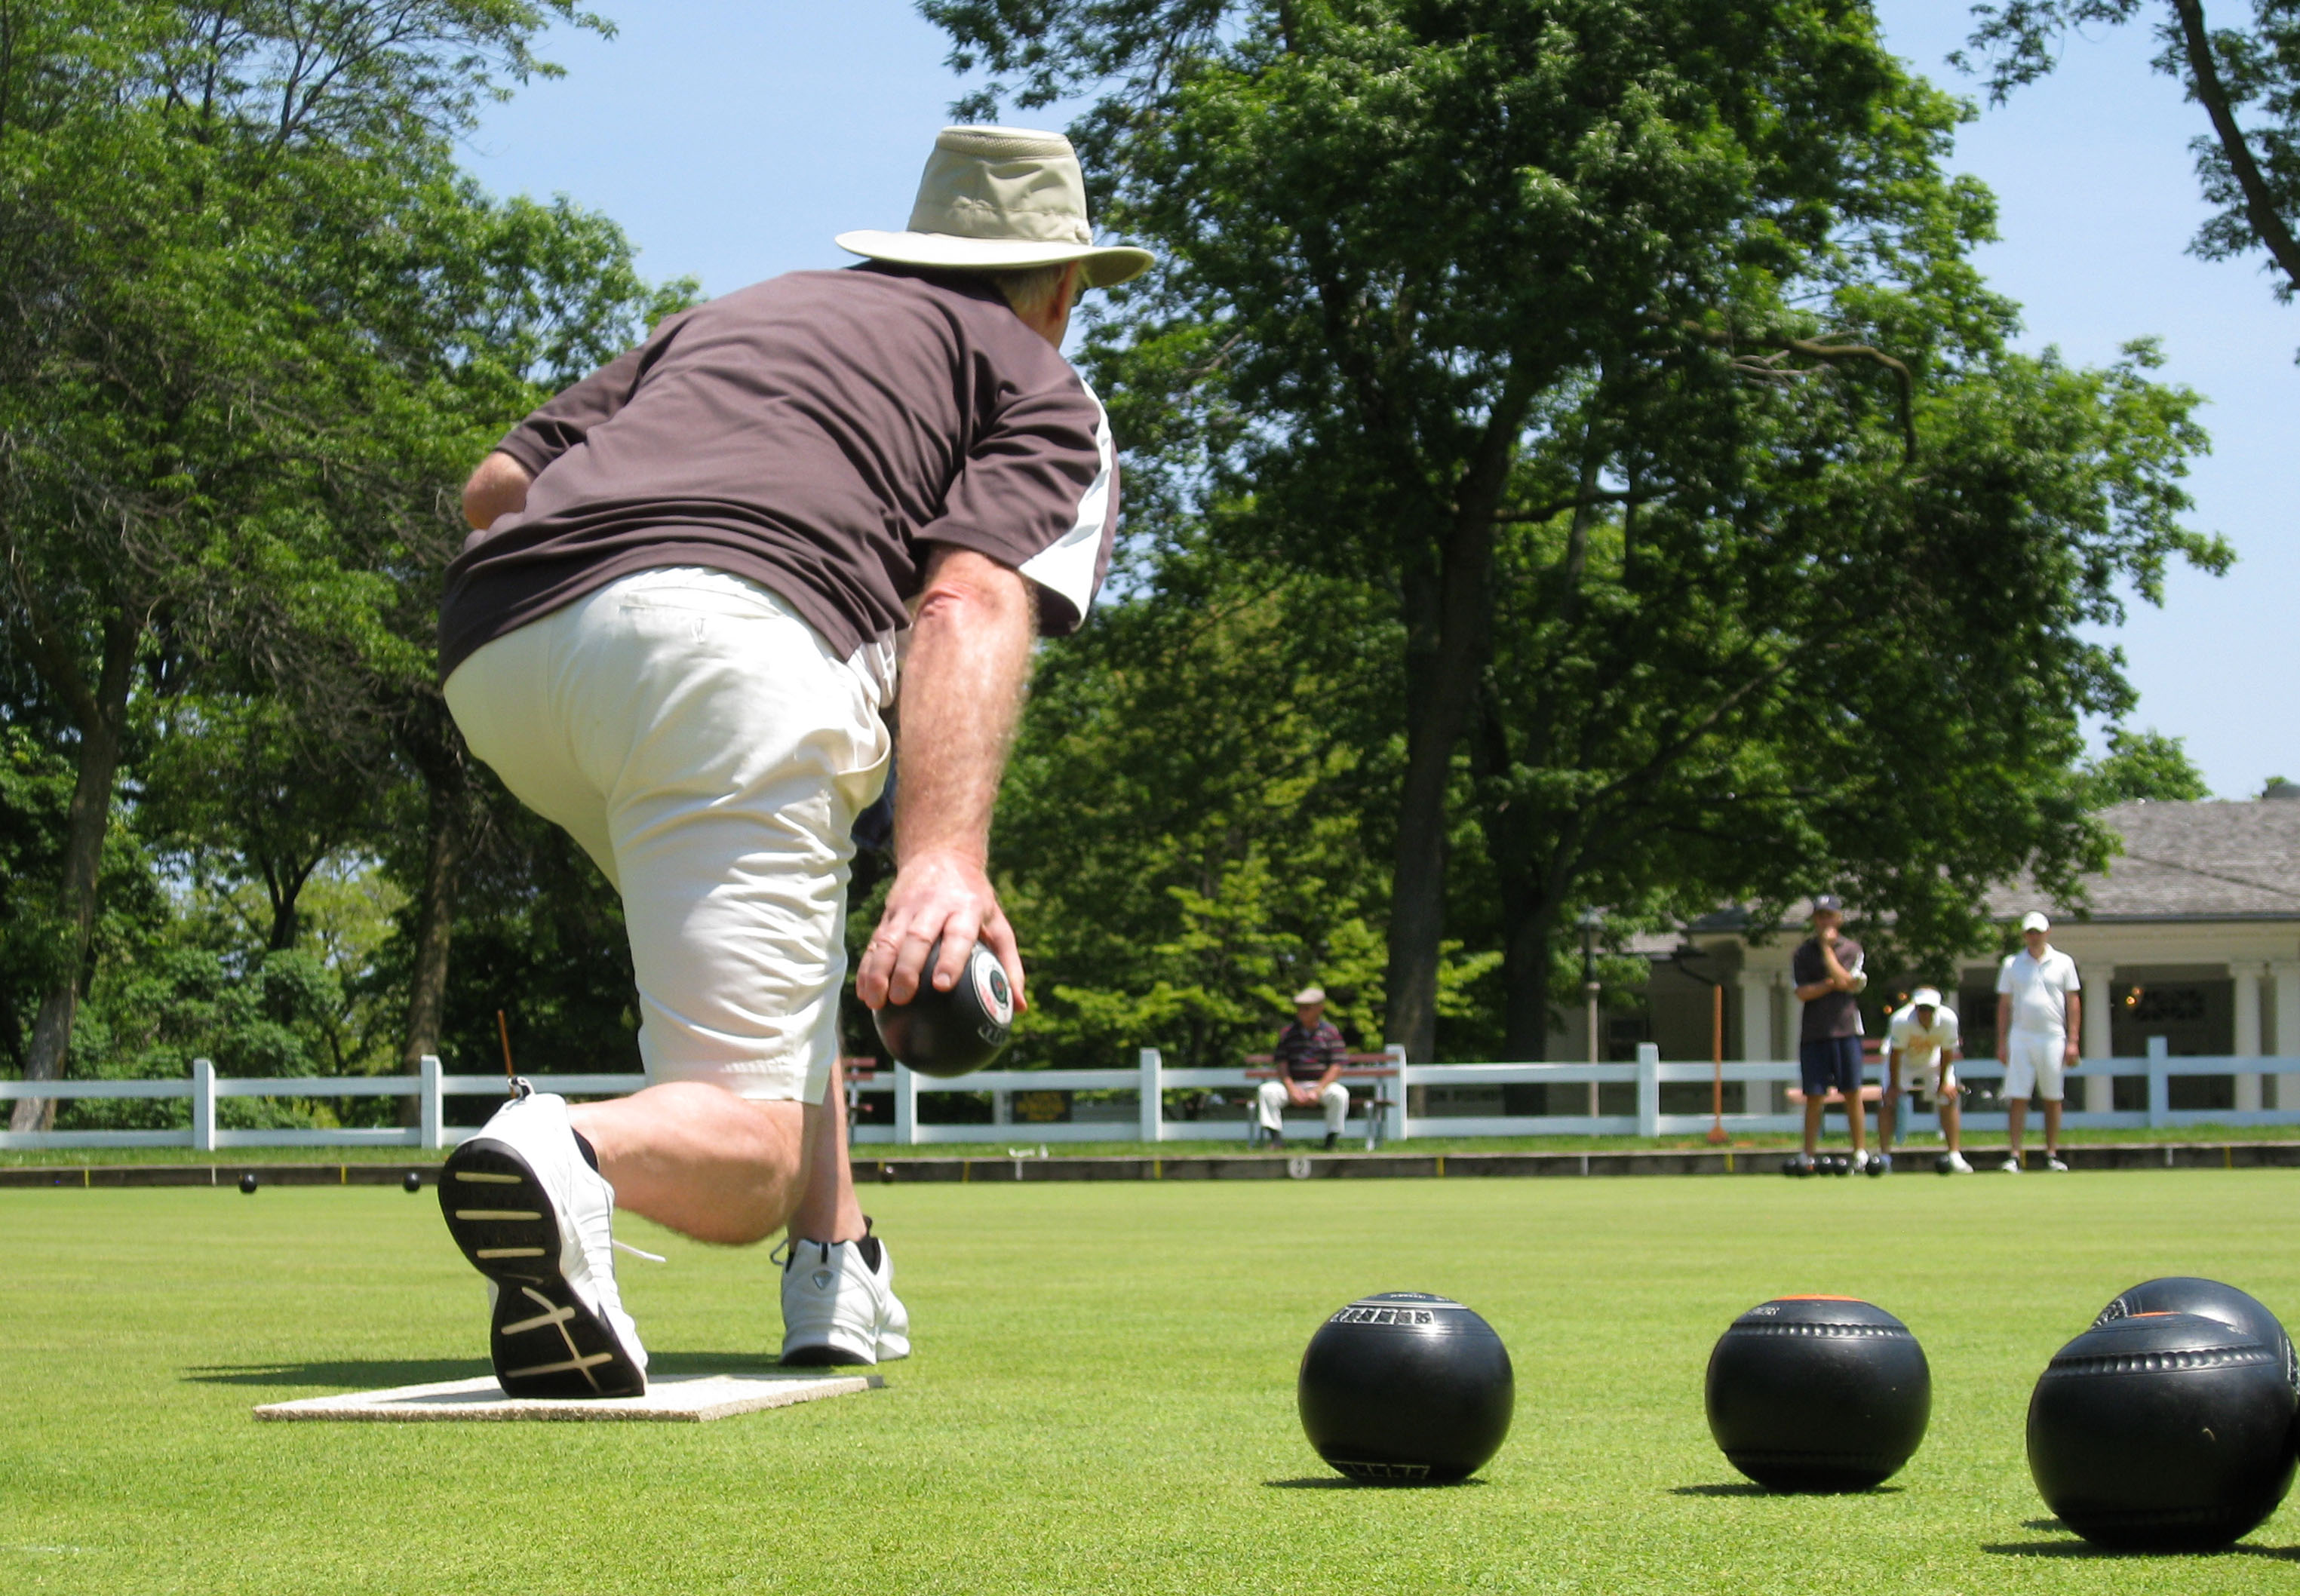 Summer Lawn Bowls In Milwaukee Wi Lawnbowls Central